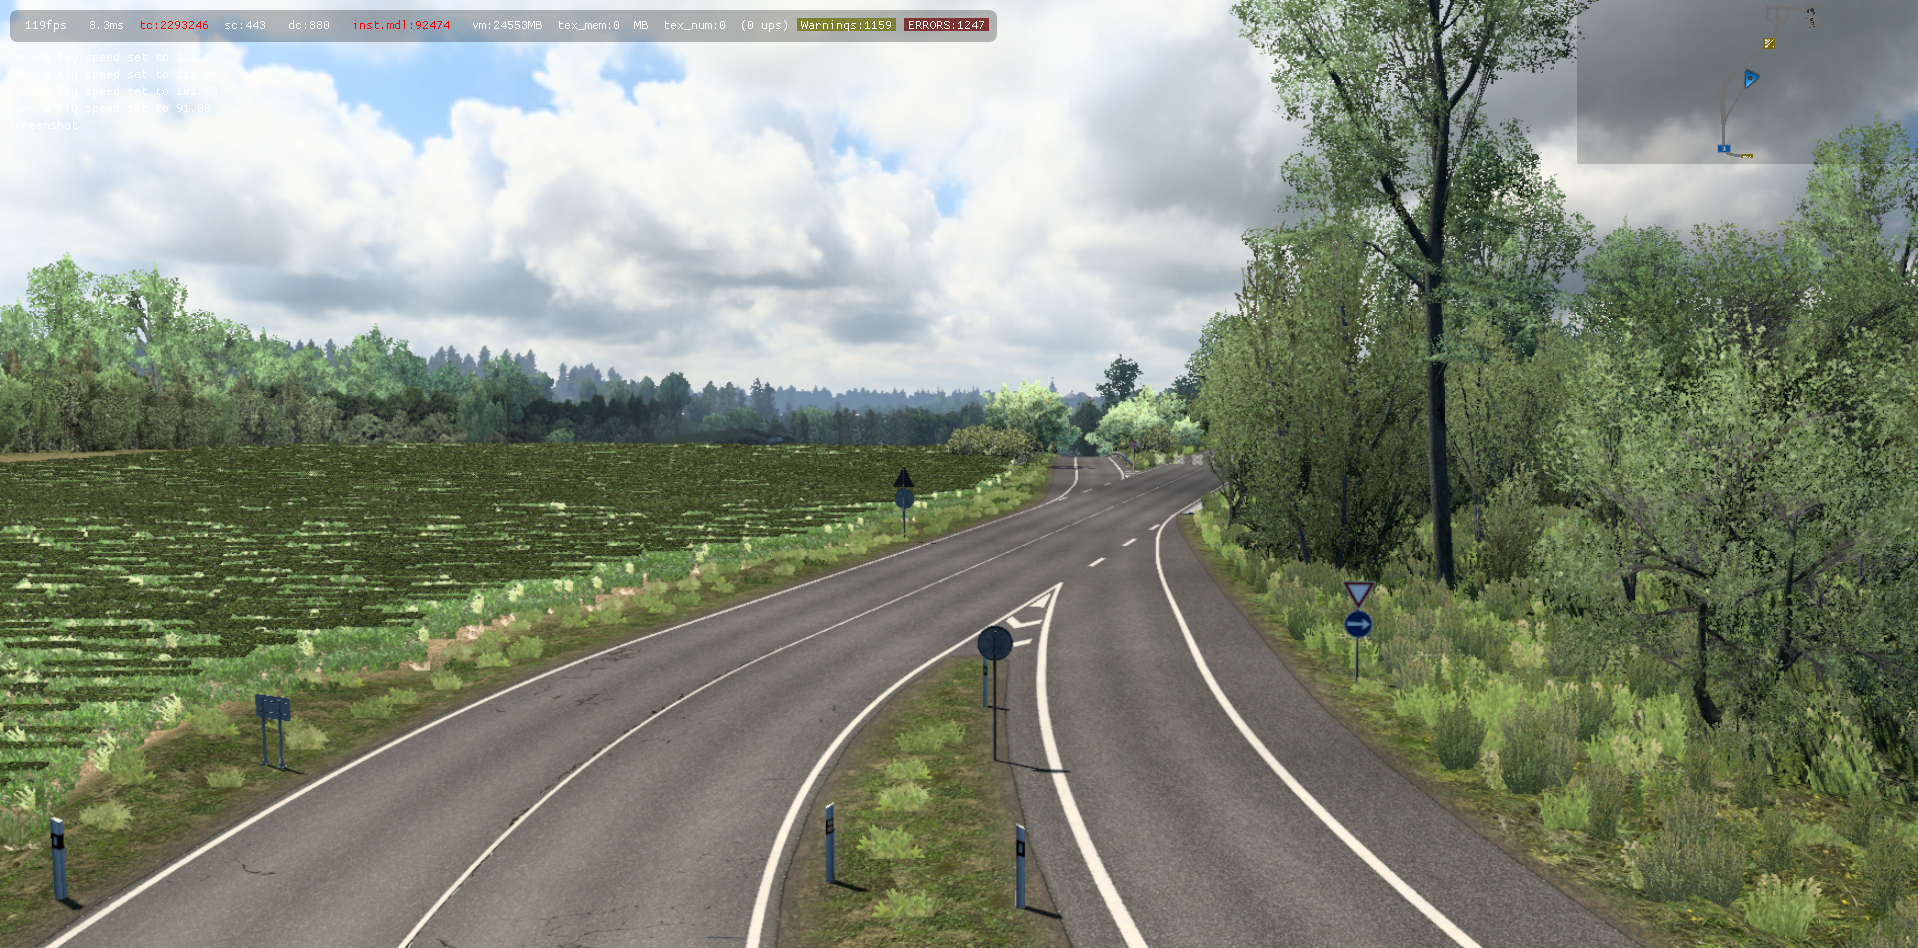 ets2_20210822_203356_00.png